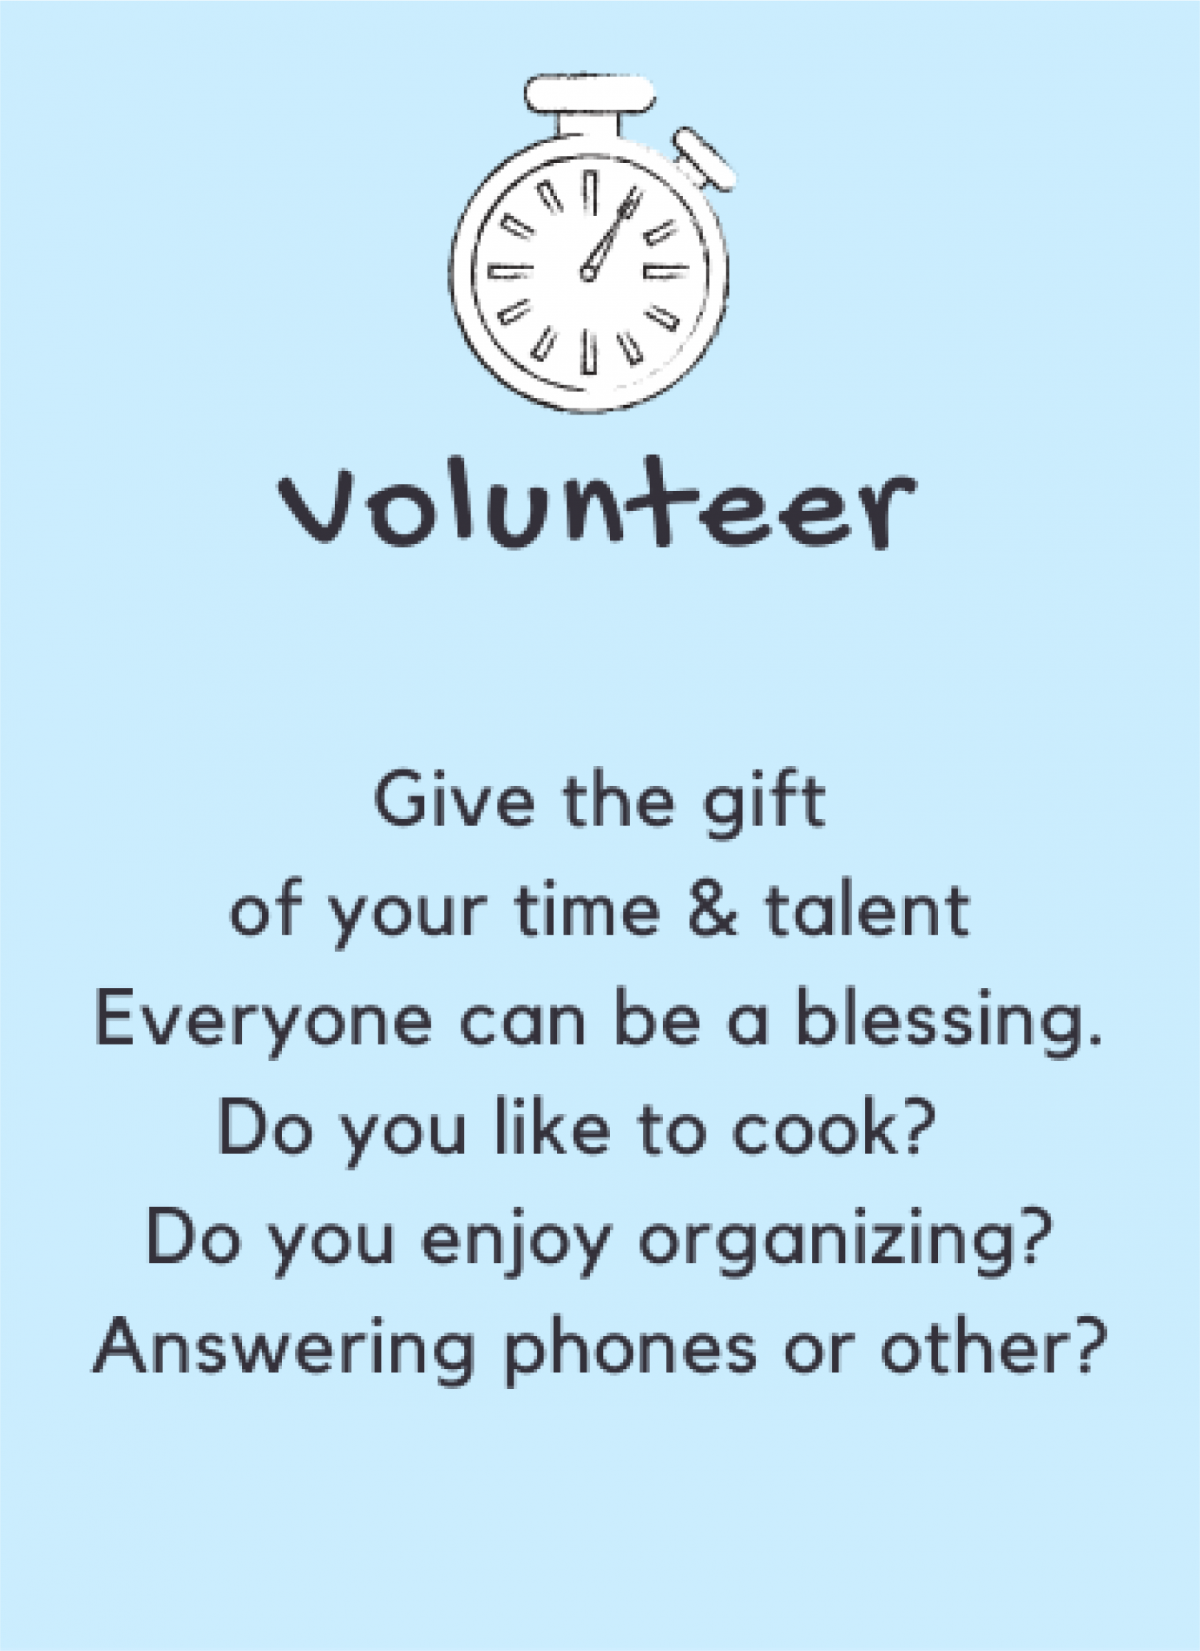 Volunteer your Time or Talents and Help Make an Impact in the Community with River of Life Mission a Non-Profit Organization in Honolulu. A soup kitchen plus much more! Come for a tour and learn about the main opportunities to volunteer including helping in the Mission's free store!